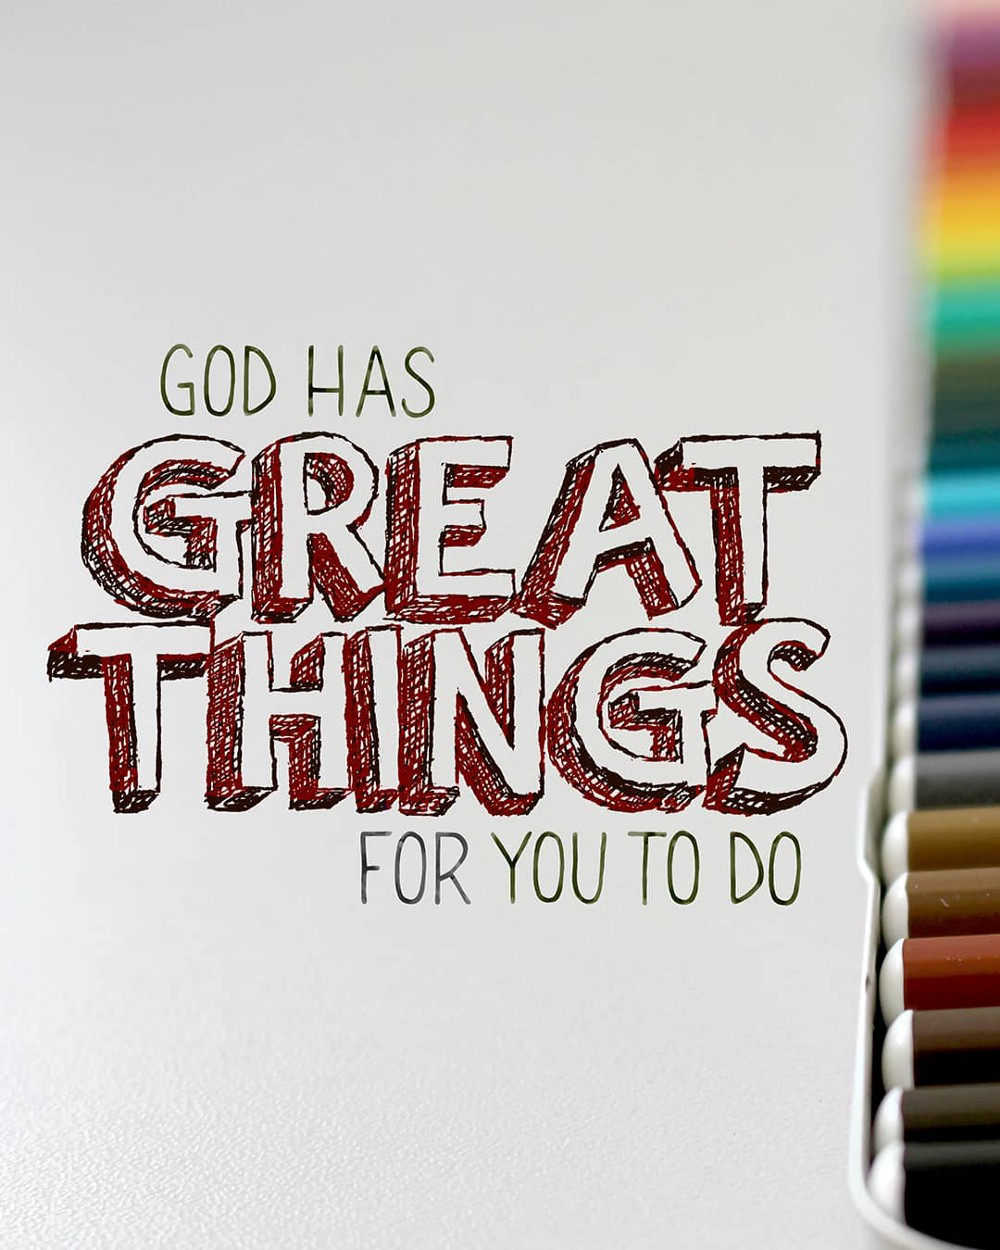 god has great things for you to do—small voice today